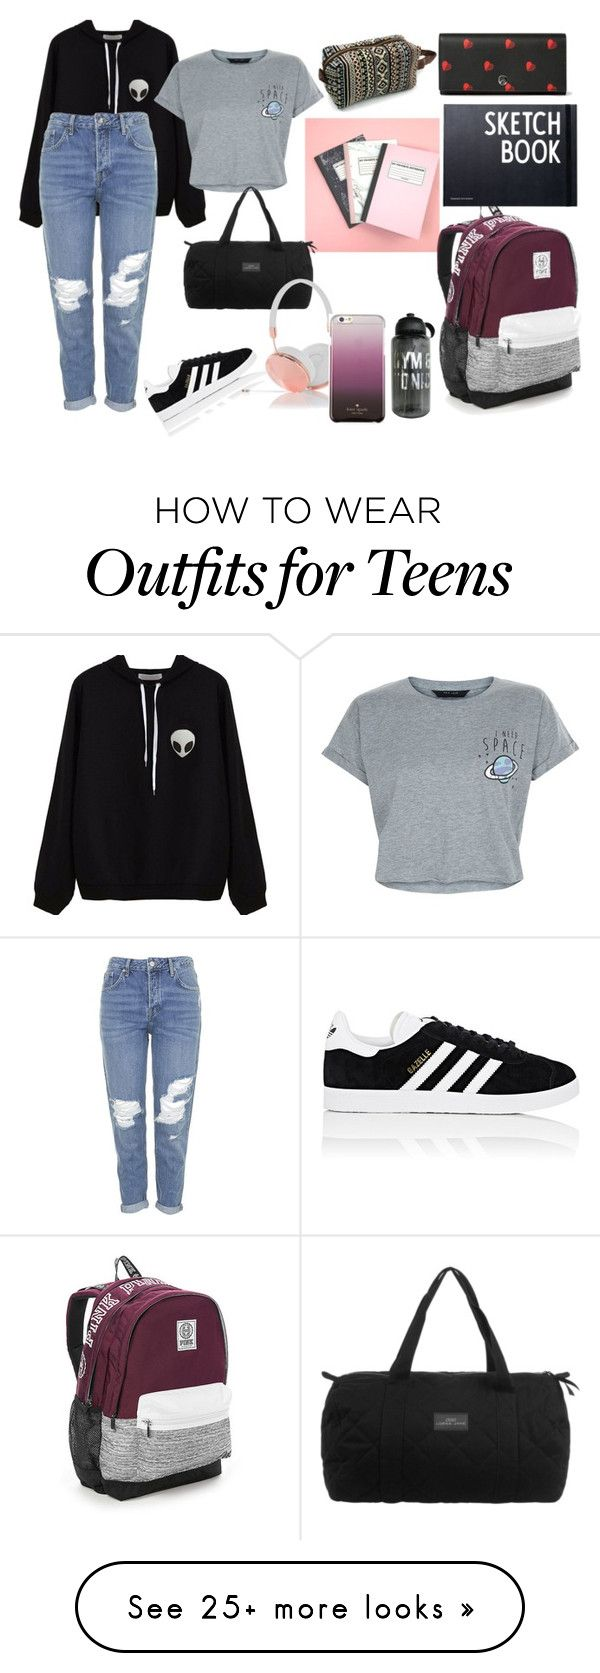 """""""School"""" by bangtan1306 on Polyvore featuring Victoria's Secret, Topshop, New Look, adidas, PS Paul Smith, Frends, Design Letters and Kate Spade"""